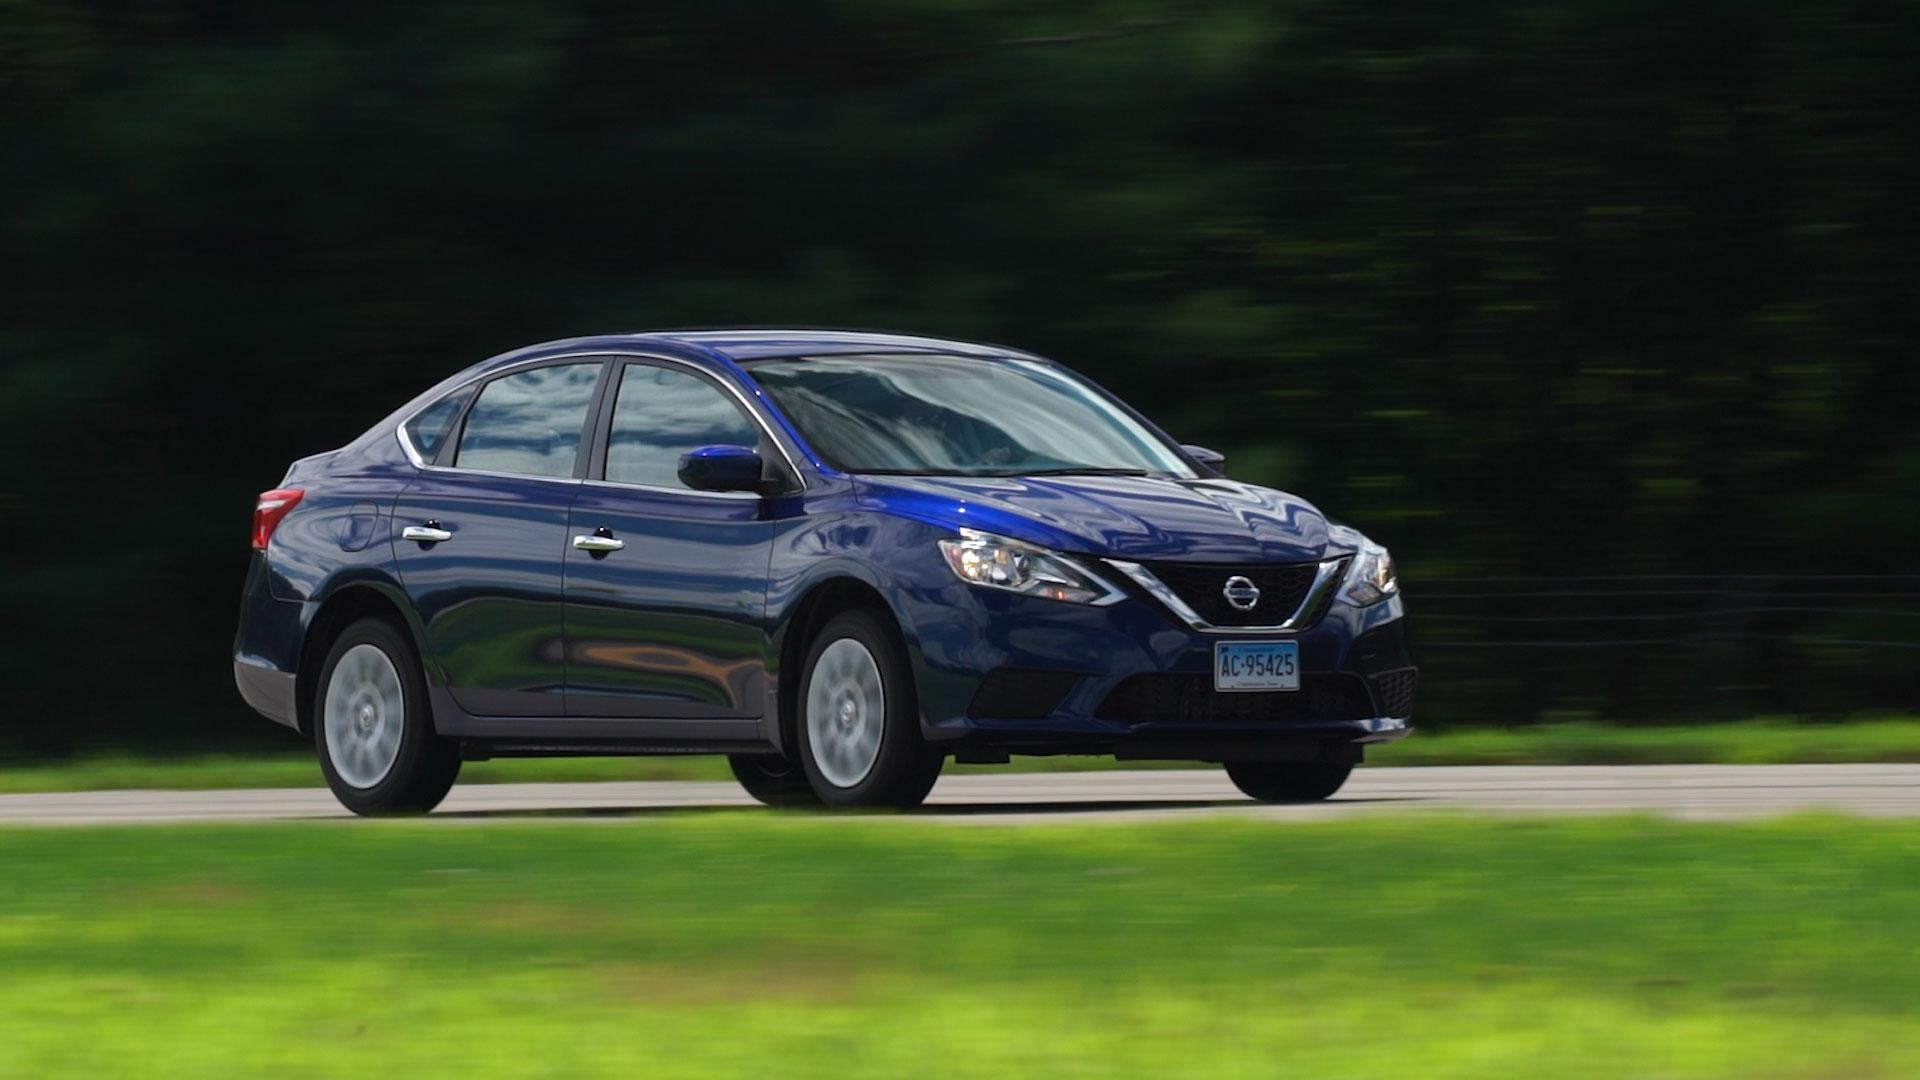 nissan sentra fails to shine in increasingly refined class